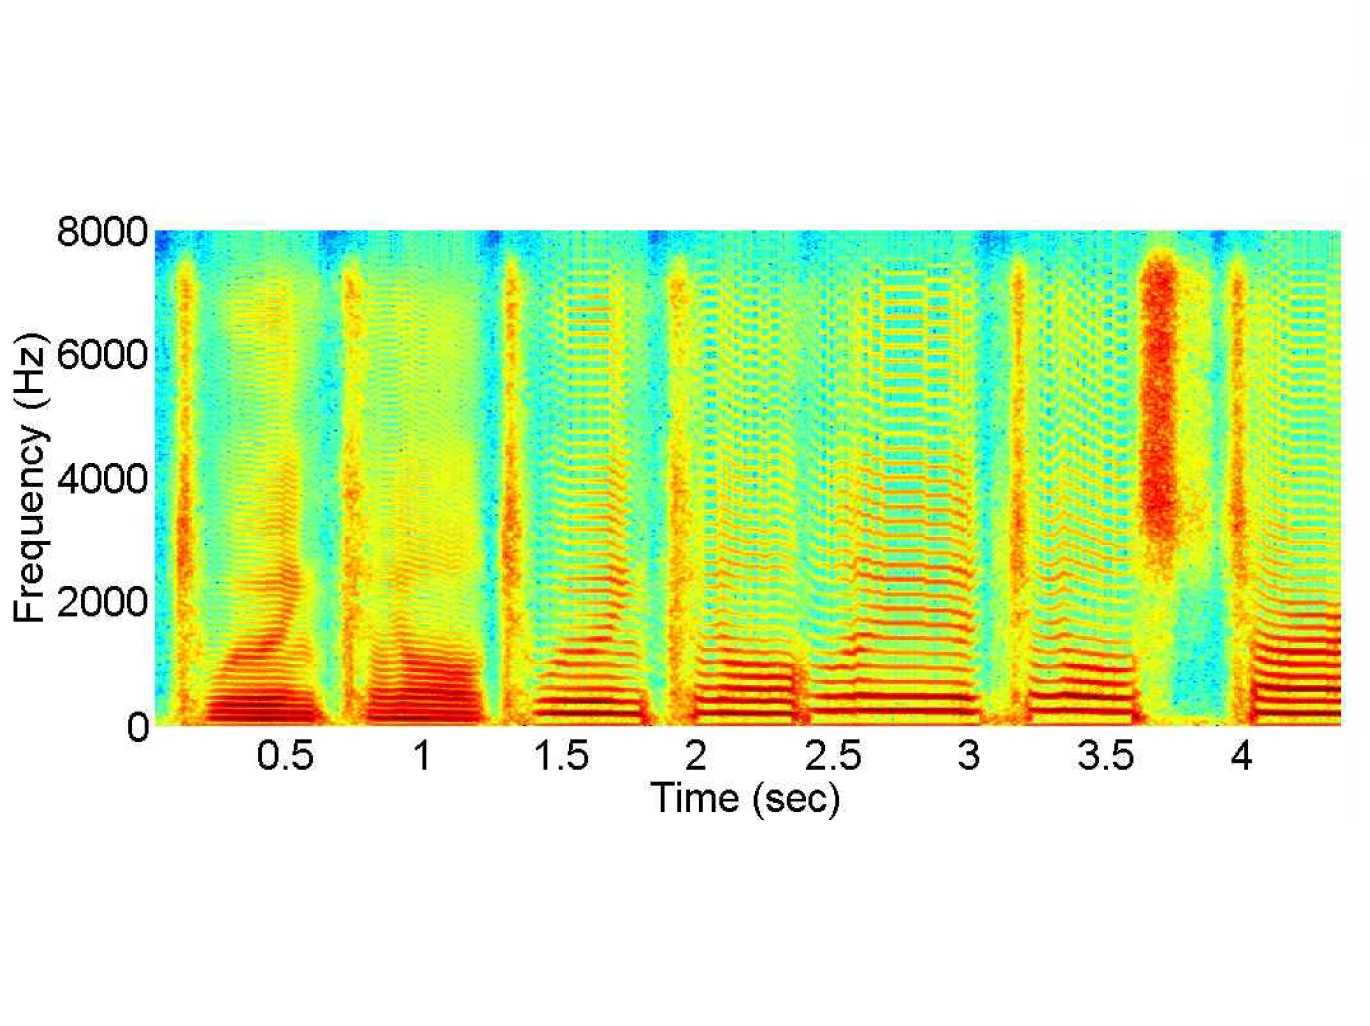 Singing Voice Synthesis Using HMM Based TTS and MusicXML